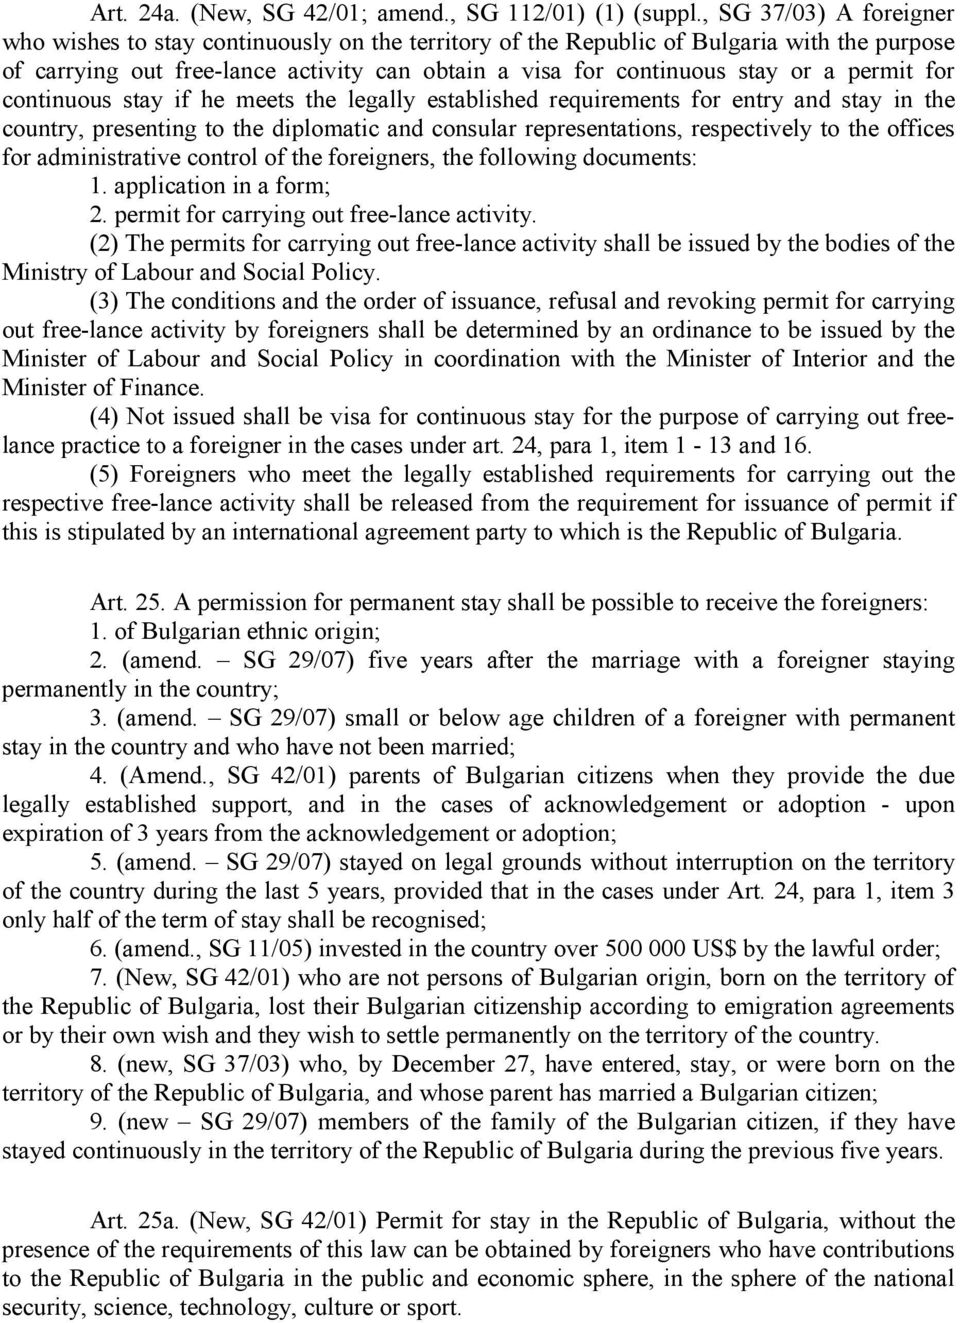 permit for continuous stay if he meets the legally established requirements for entry and stay in the country, presenting to the diplomatic and consular representations, respectively to the offices